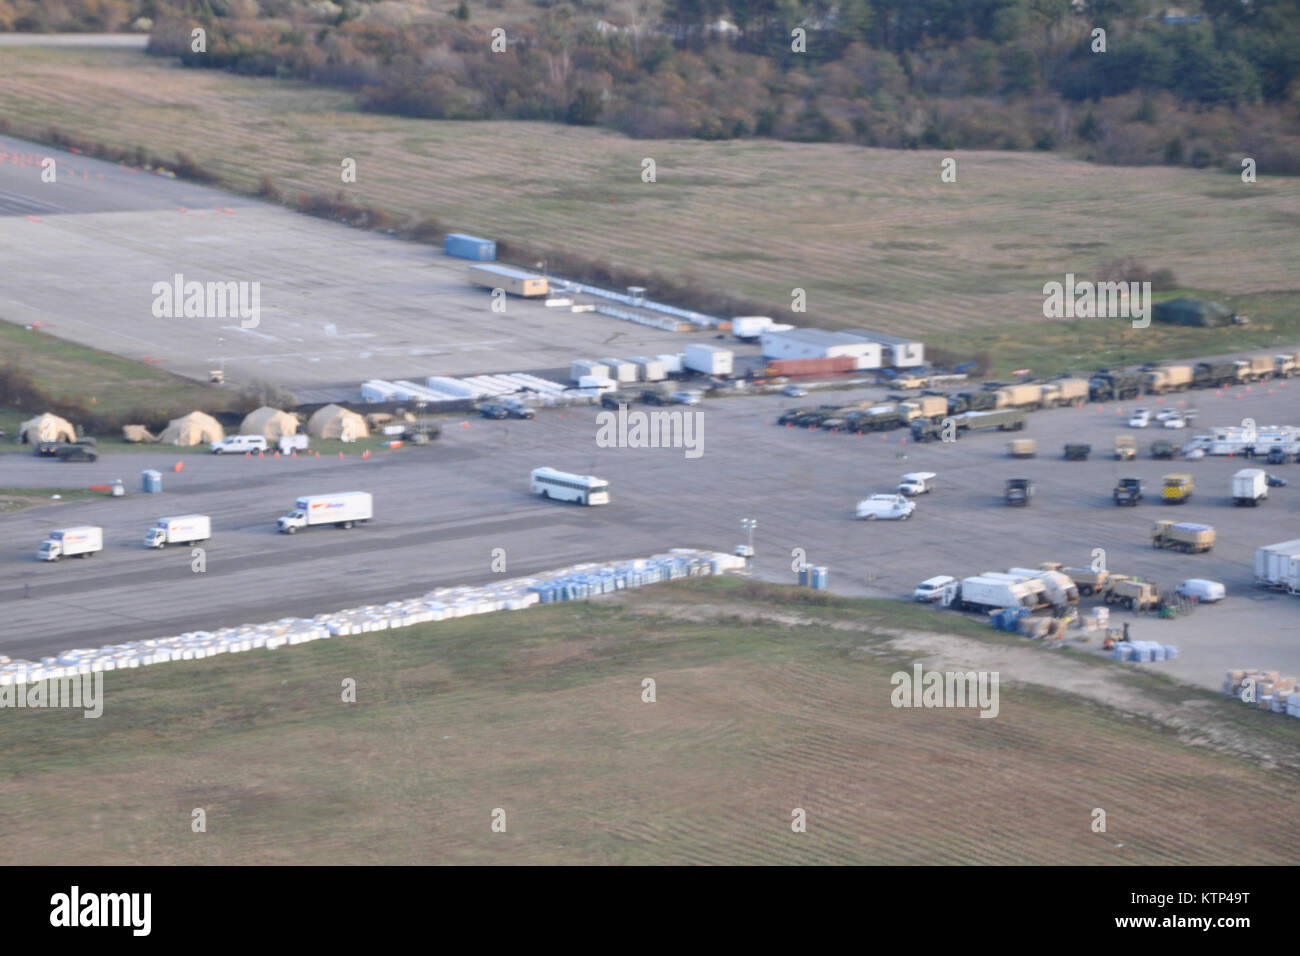 New York Army National Guard sets up a logistics support area at Floyf Bennett Field in Queens, NY to consolidate - Stock Image